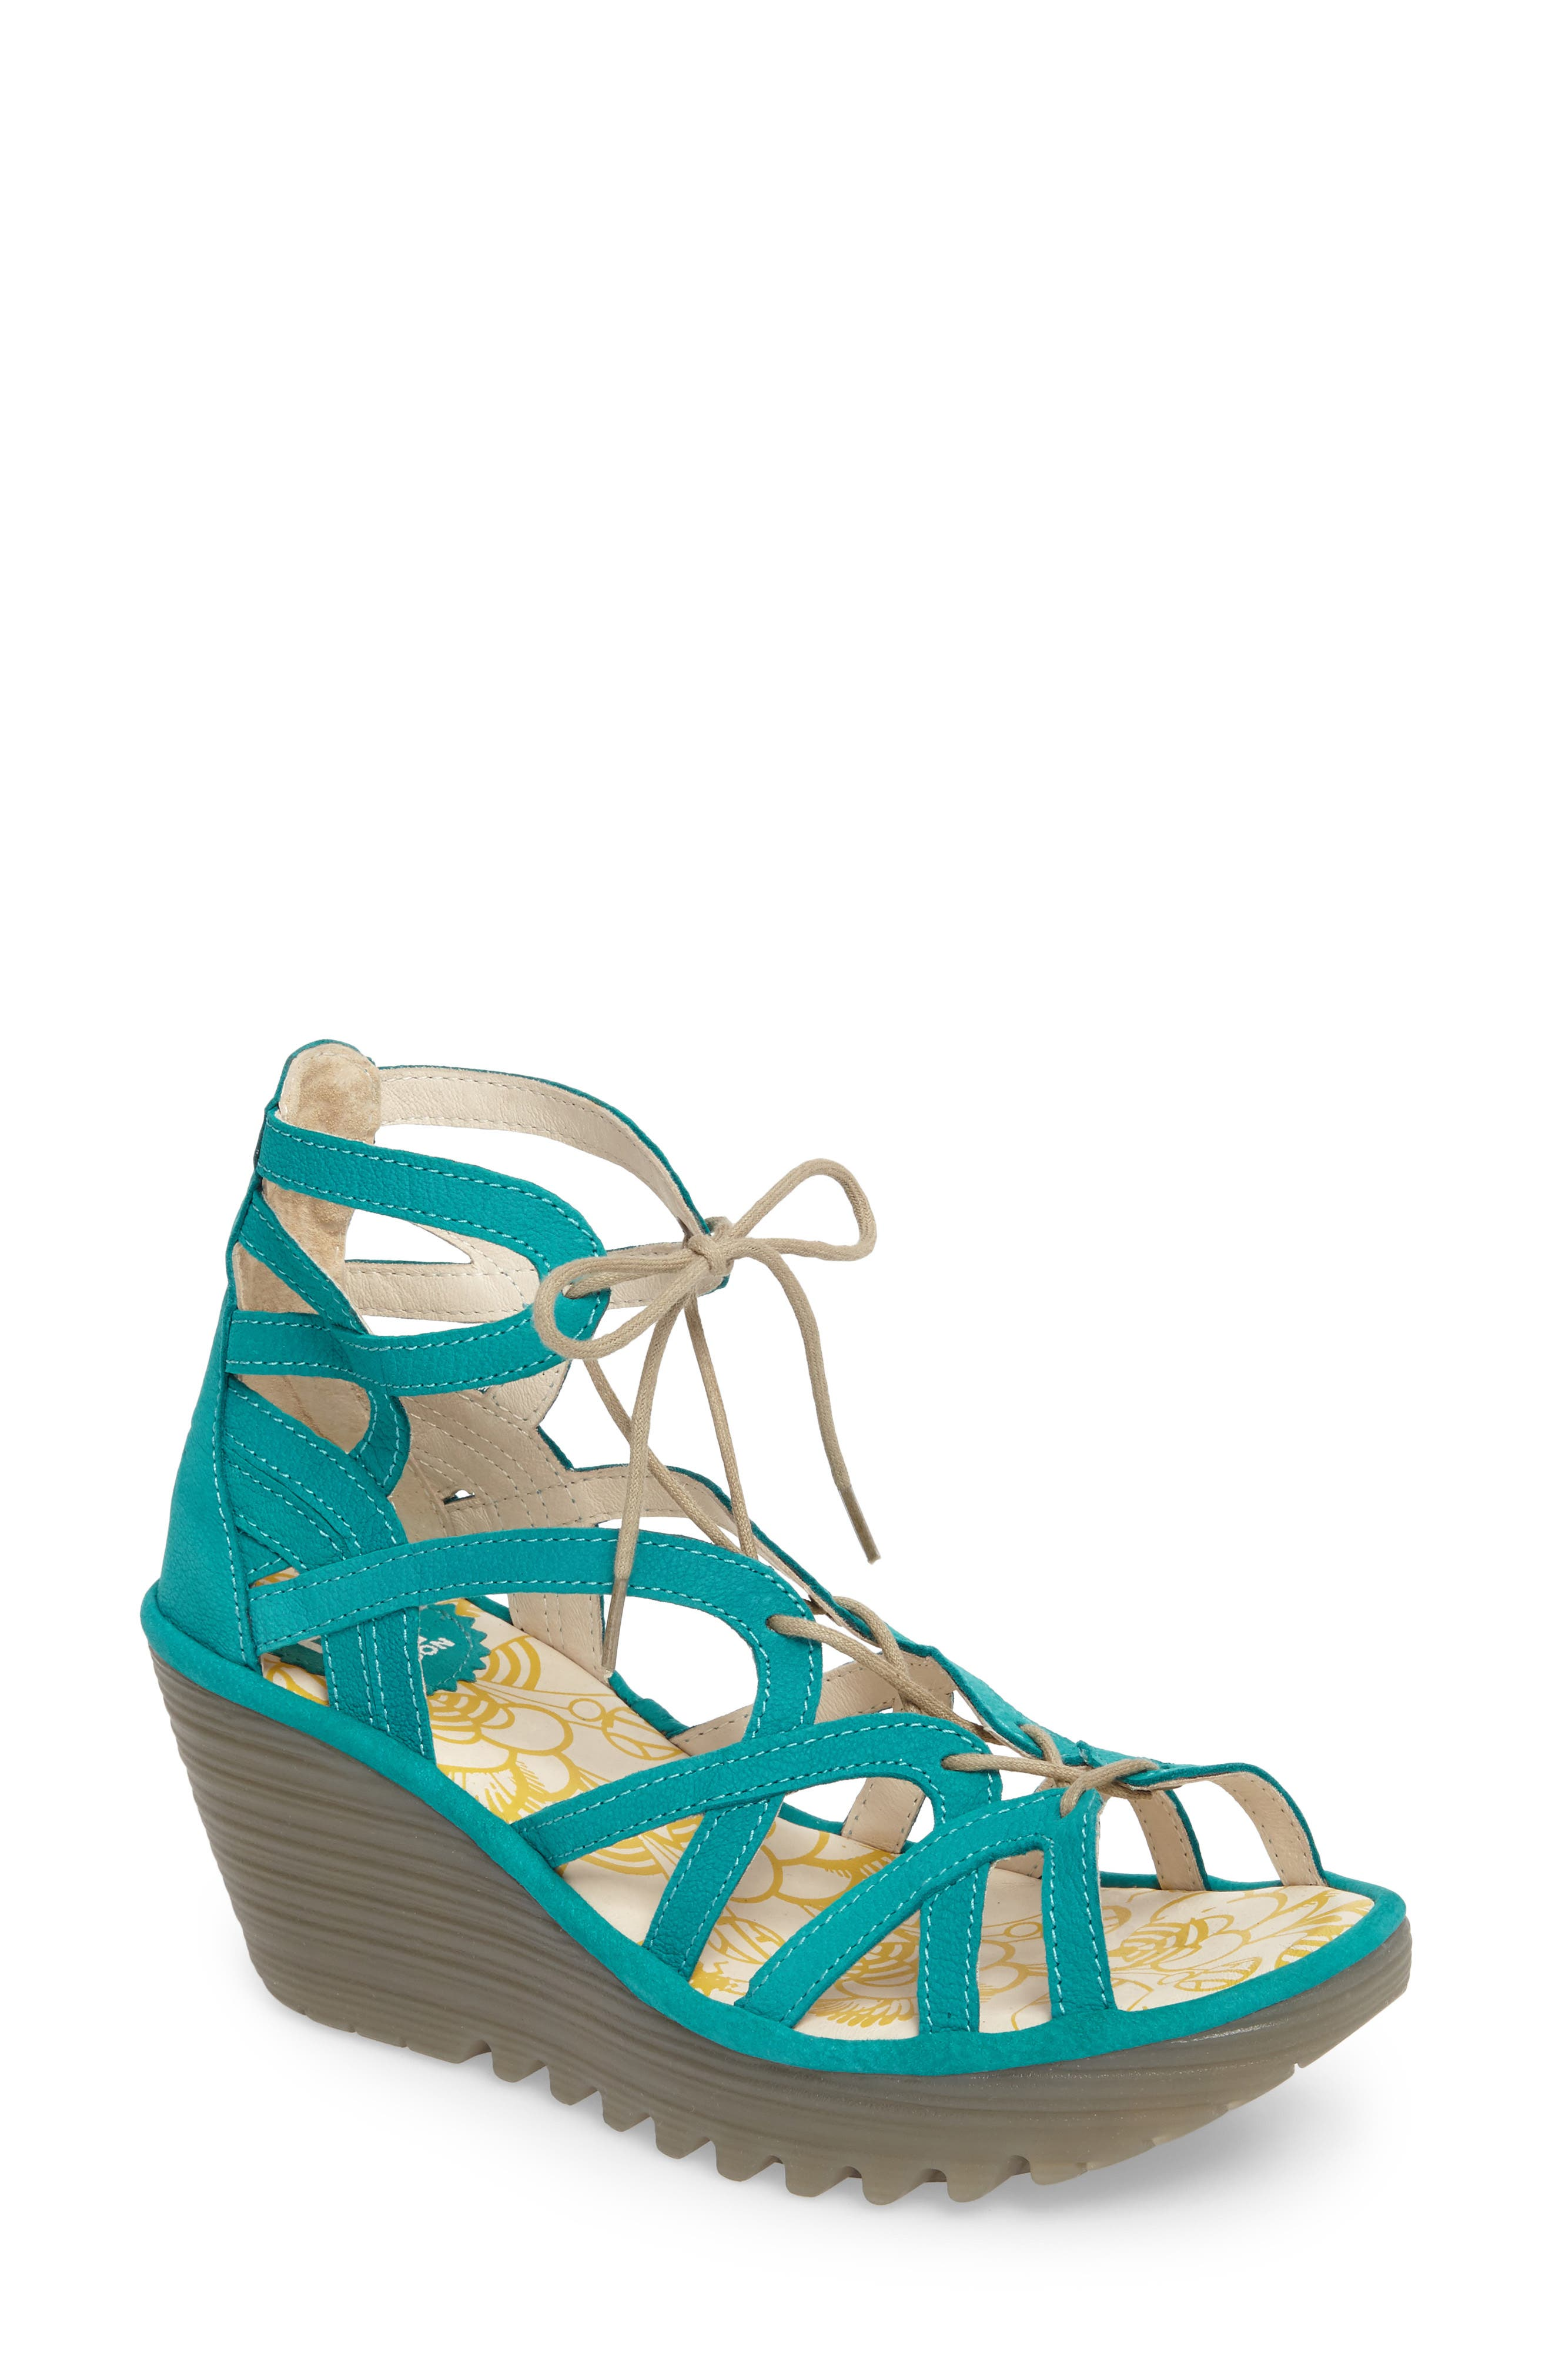 FLY LONDON, 'Yuke' Platform Wedge Sandal, Main thumbnail 1, color, VERDIGRIS LEATHER